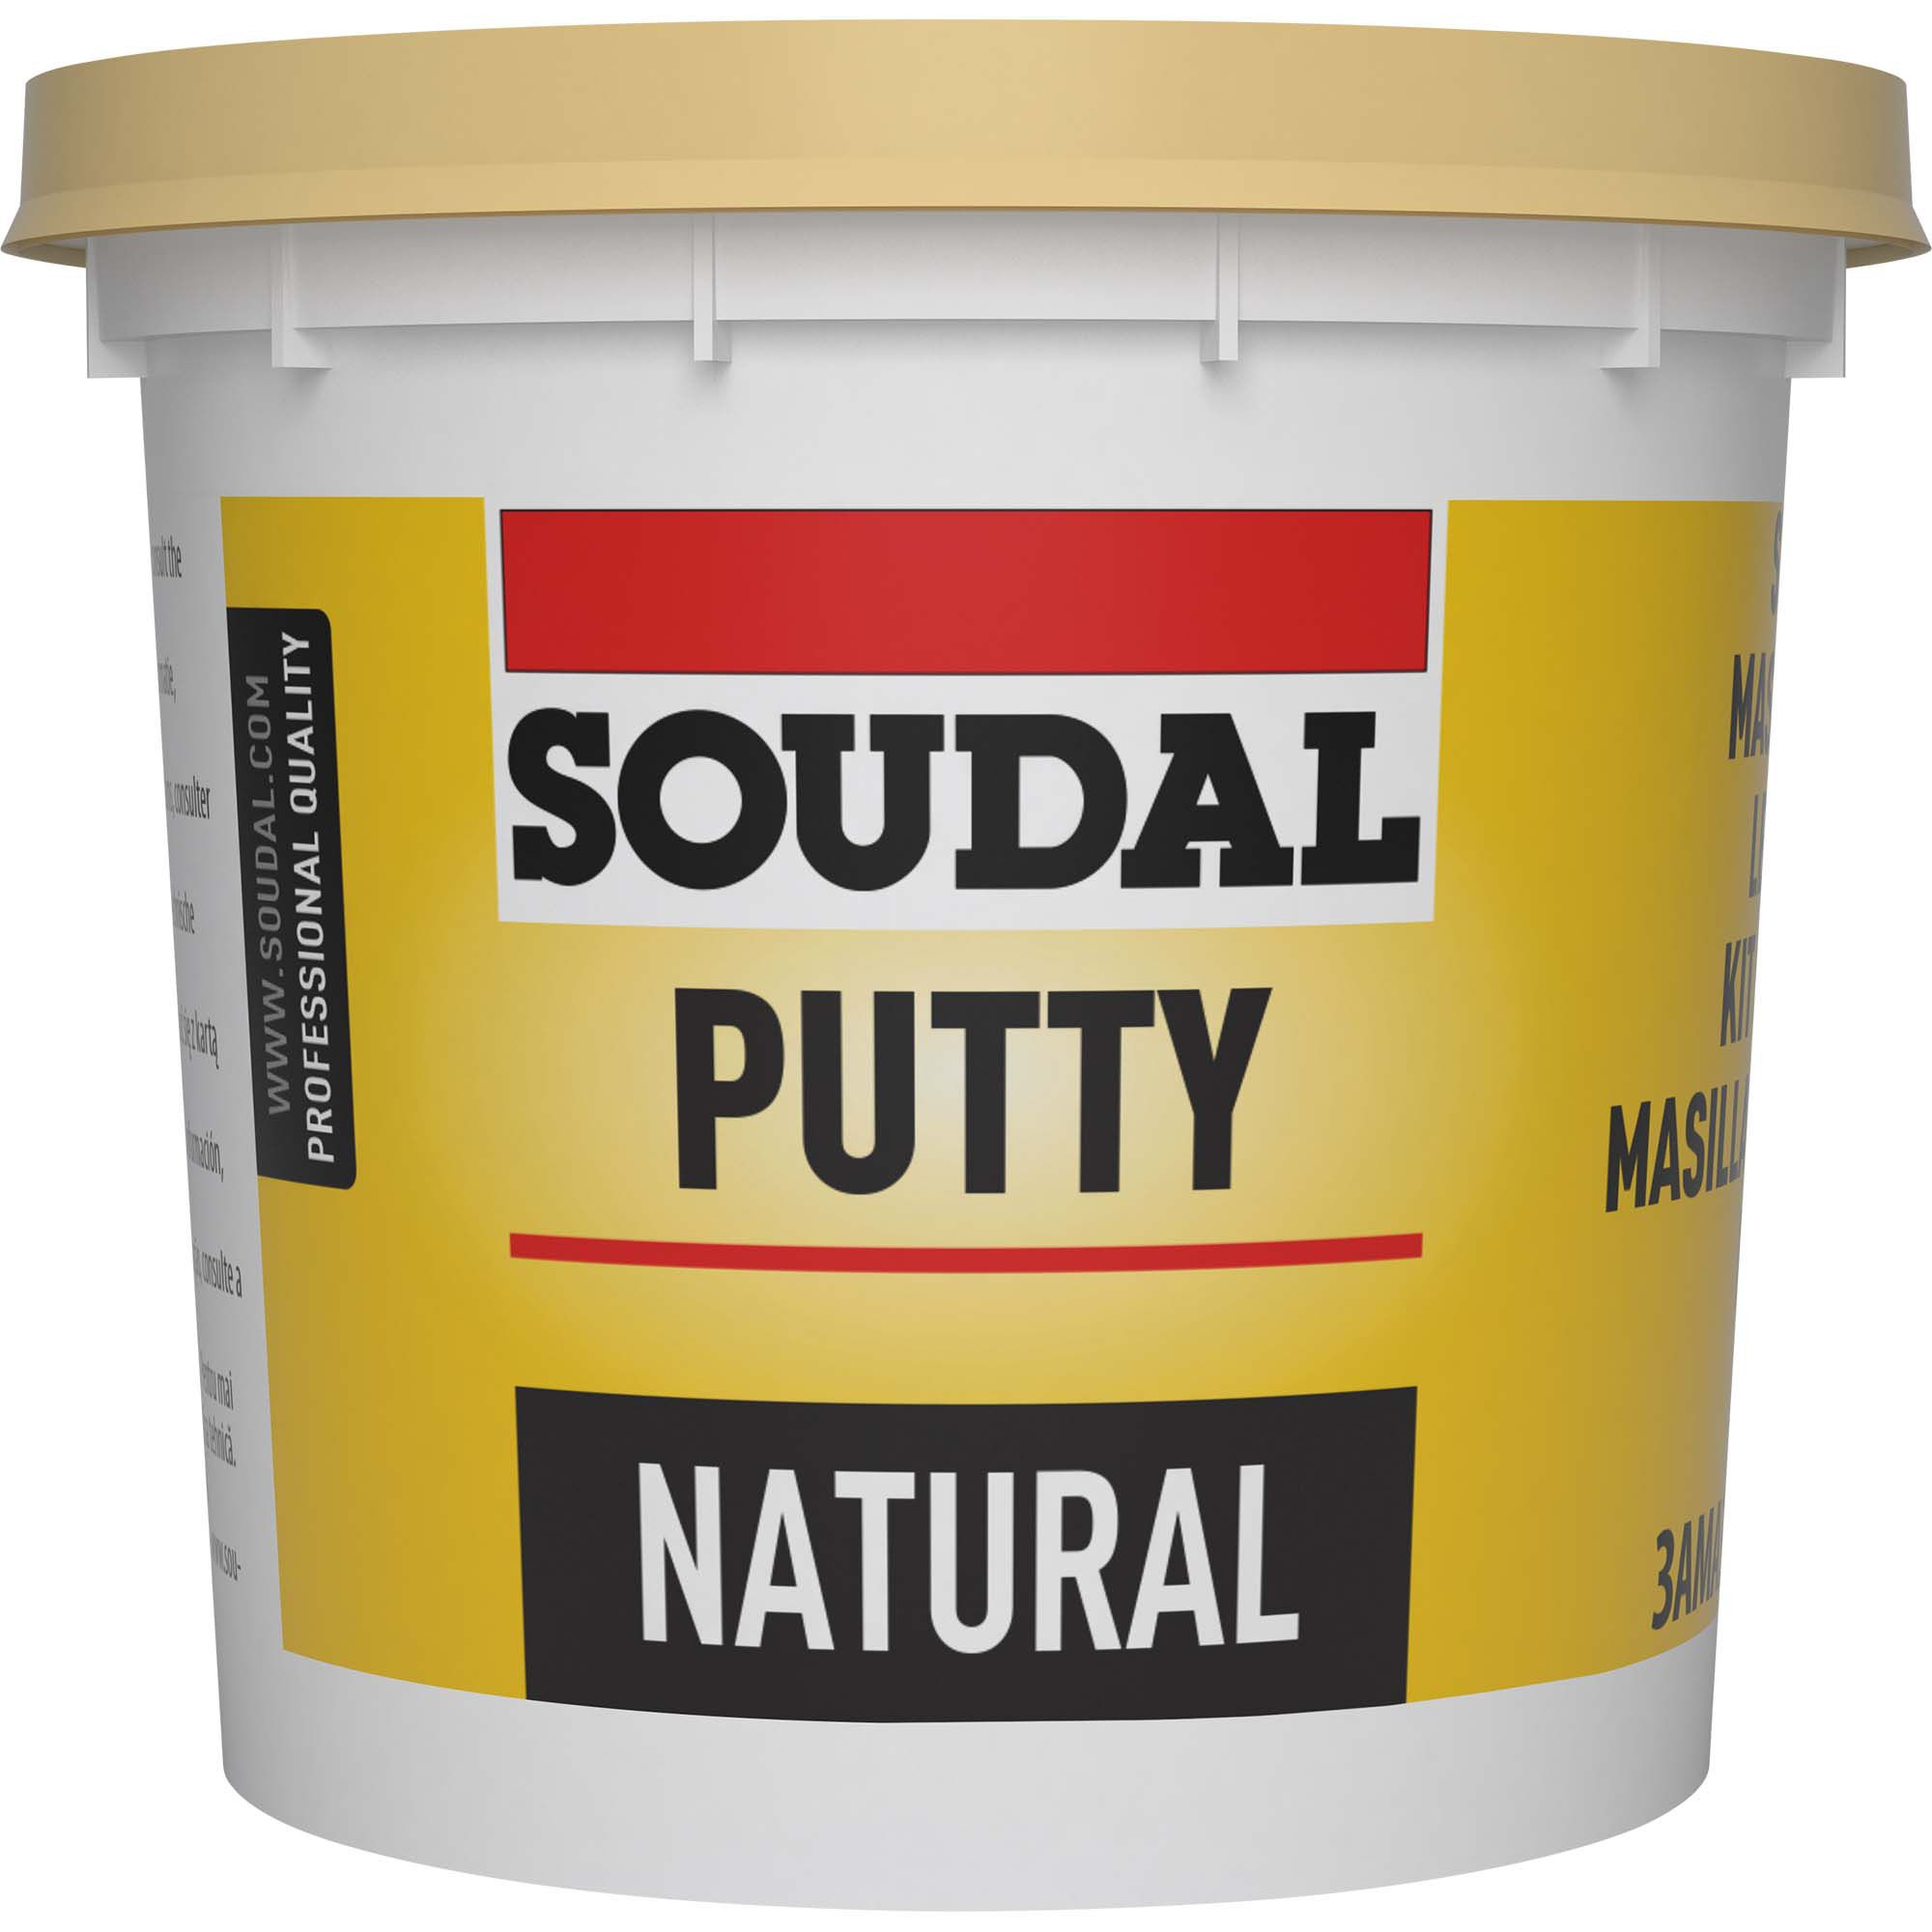 ideas for lights on a outdoor garage - Soudal Putty Departments